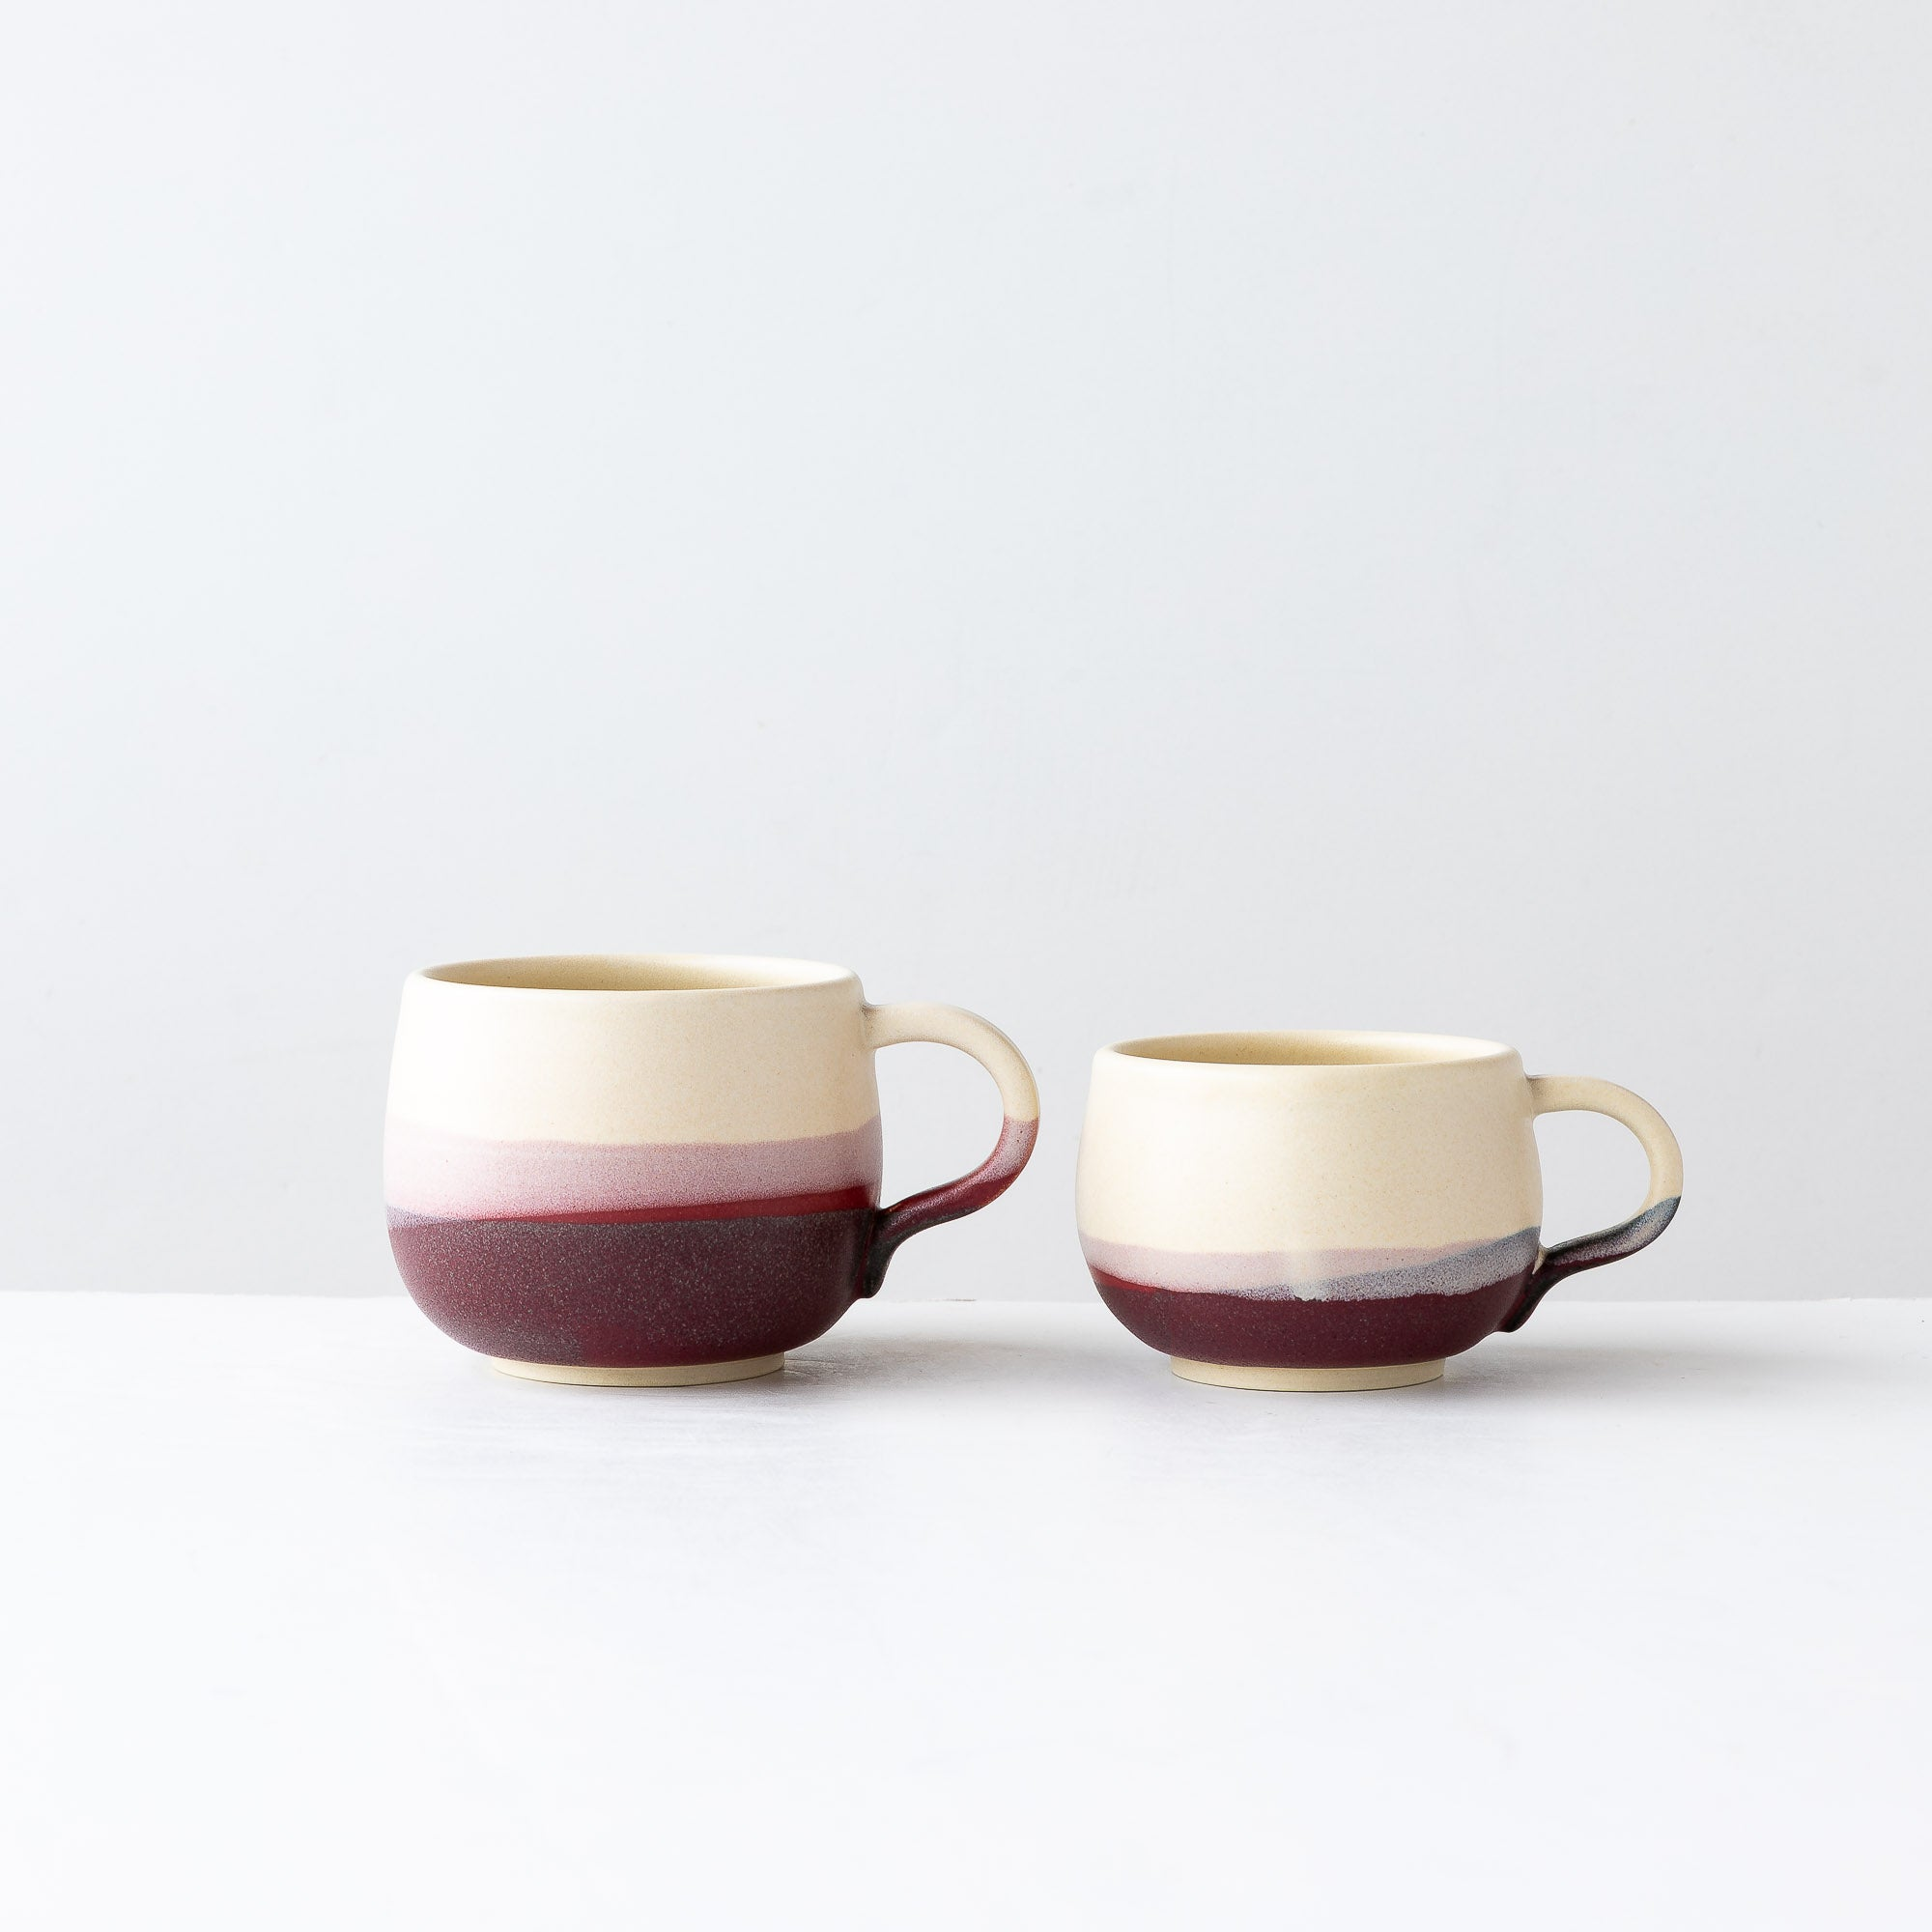 Pays d'O - Two Handmade Stoneware Cups / Espresso Cups - Sold by Chic & Basta